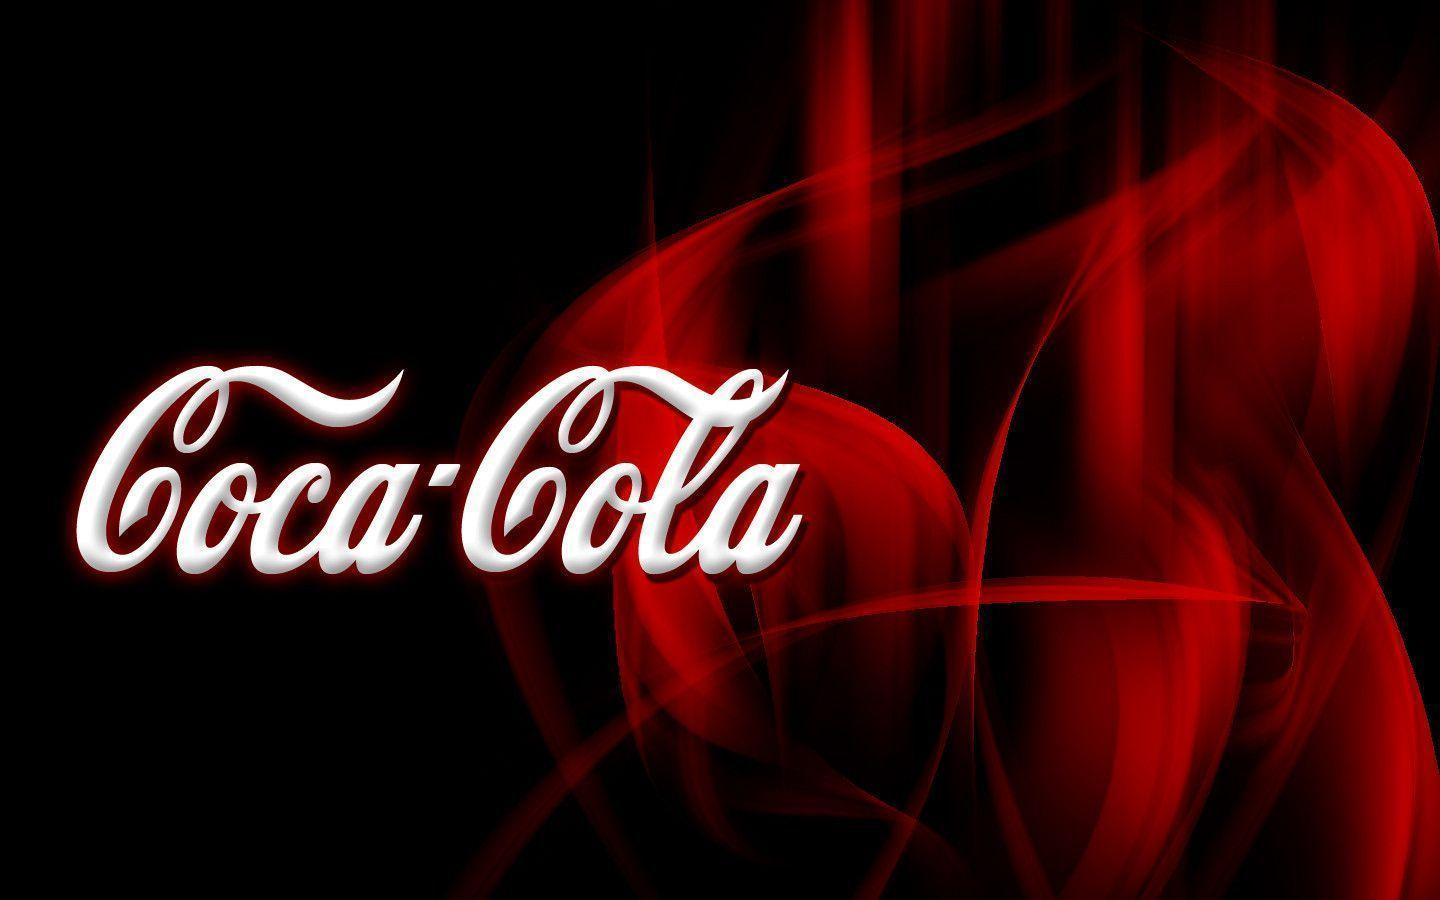 Coca-Cola Wallpaper by arjuhama on DeviantArt